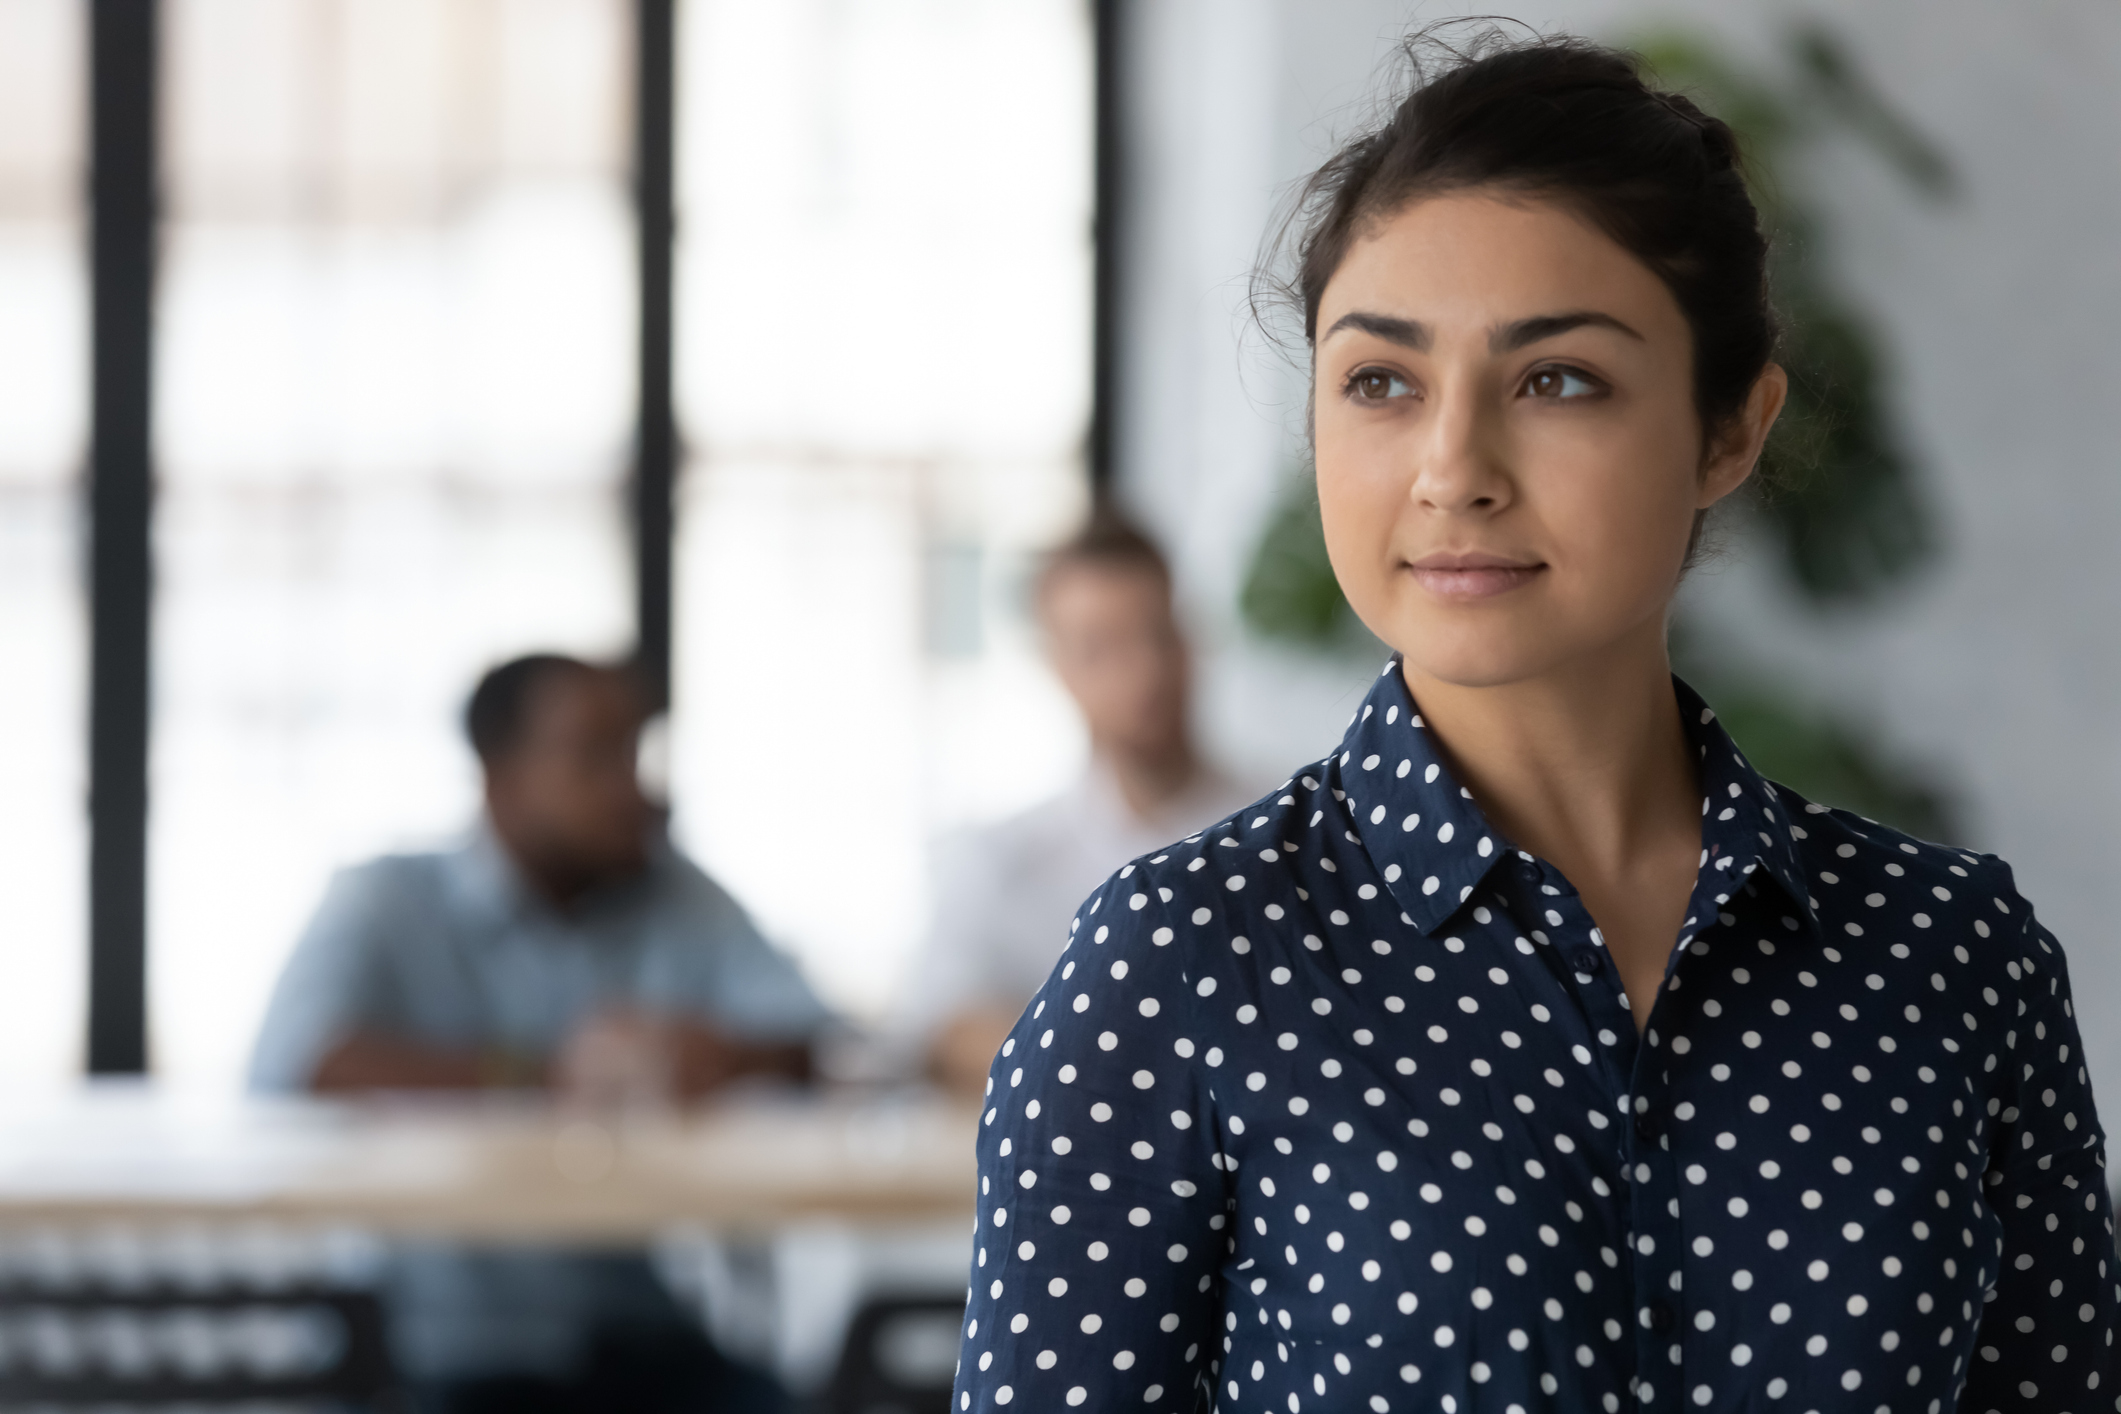 Why Aren't More Women Being Promoted to Leadership Roles?